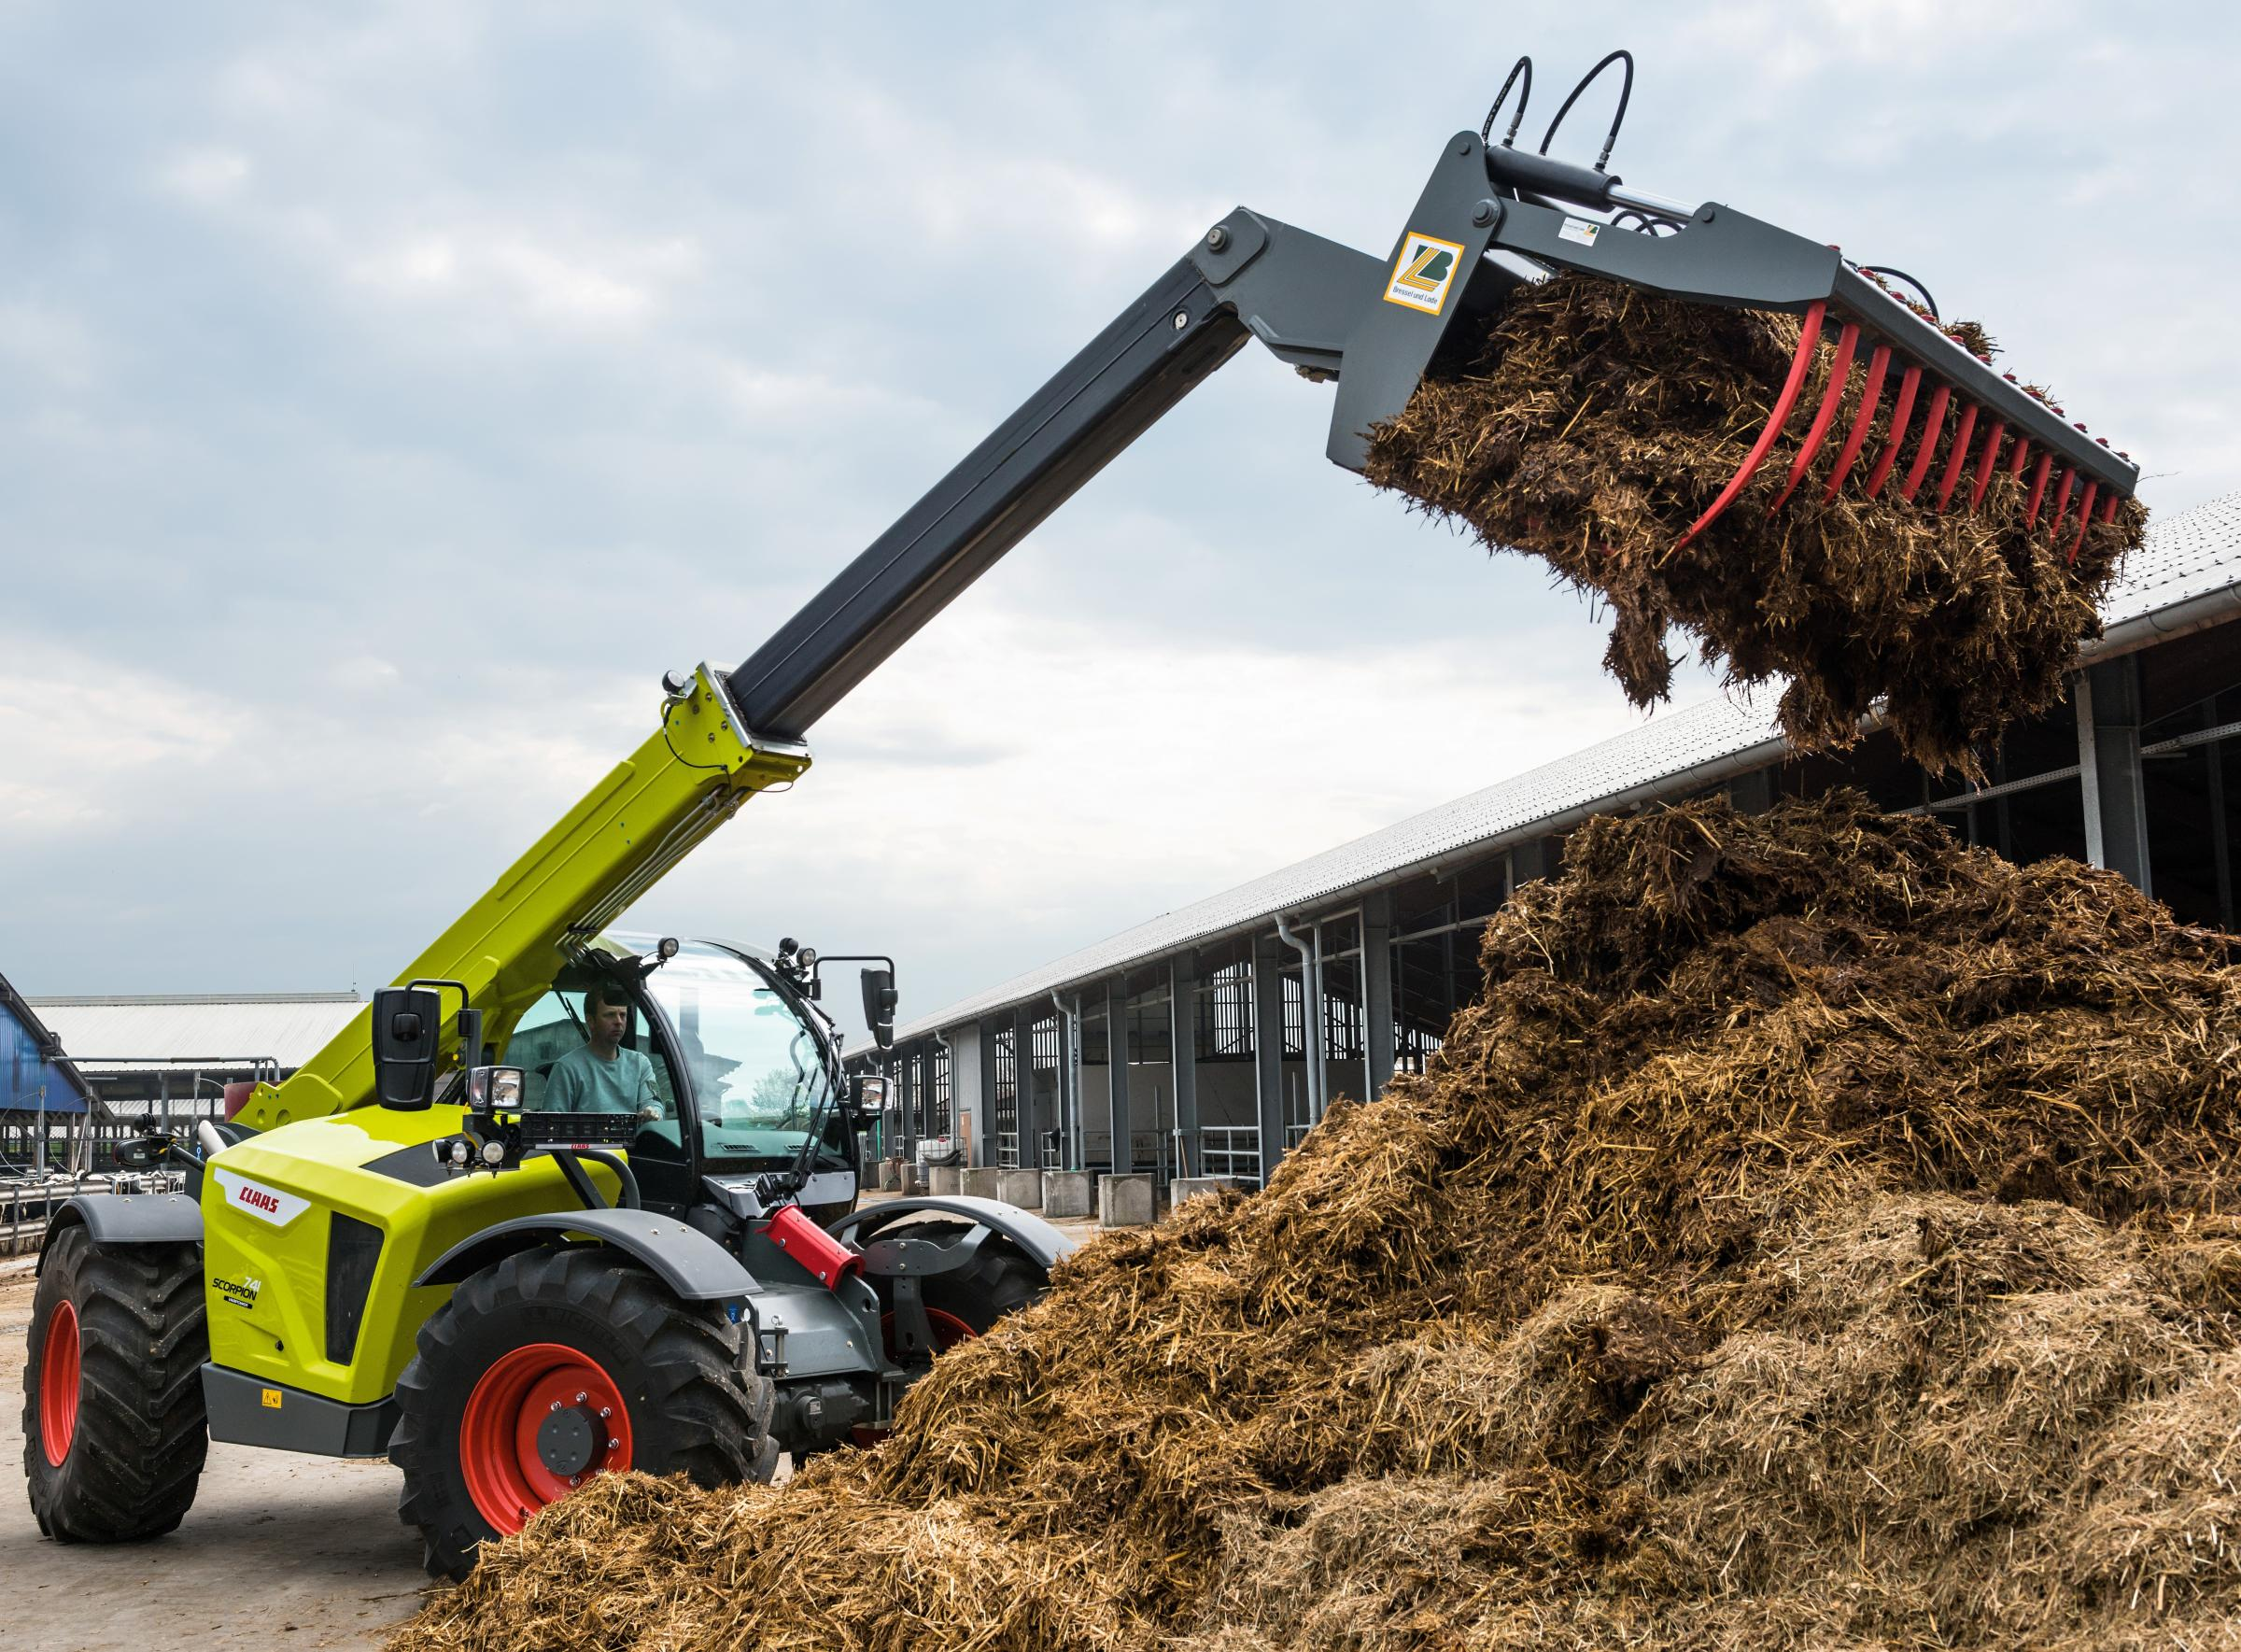 Claas adds new versatile drive system to its Scorpion handlers